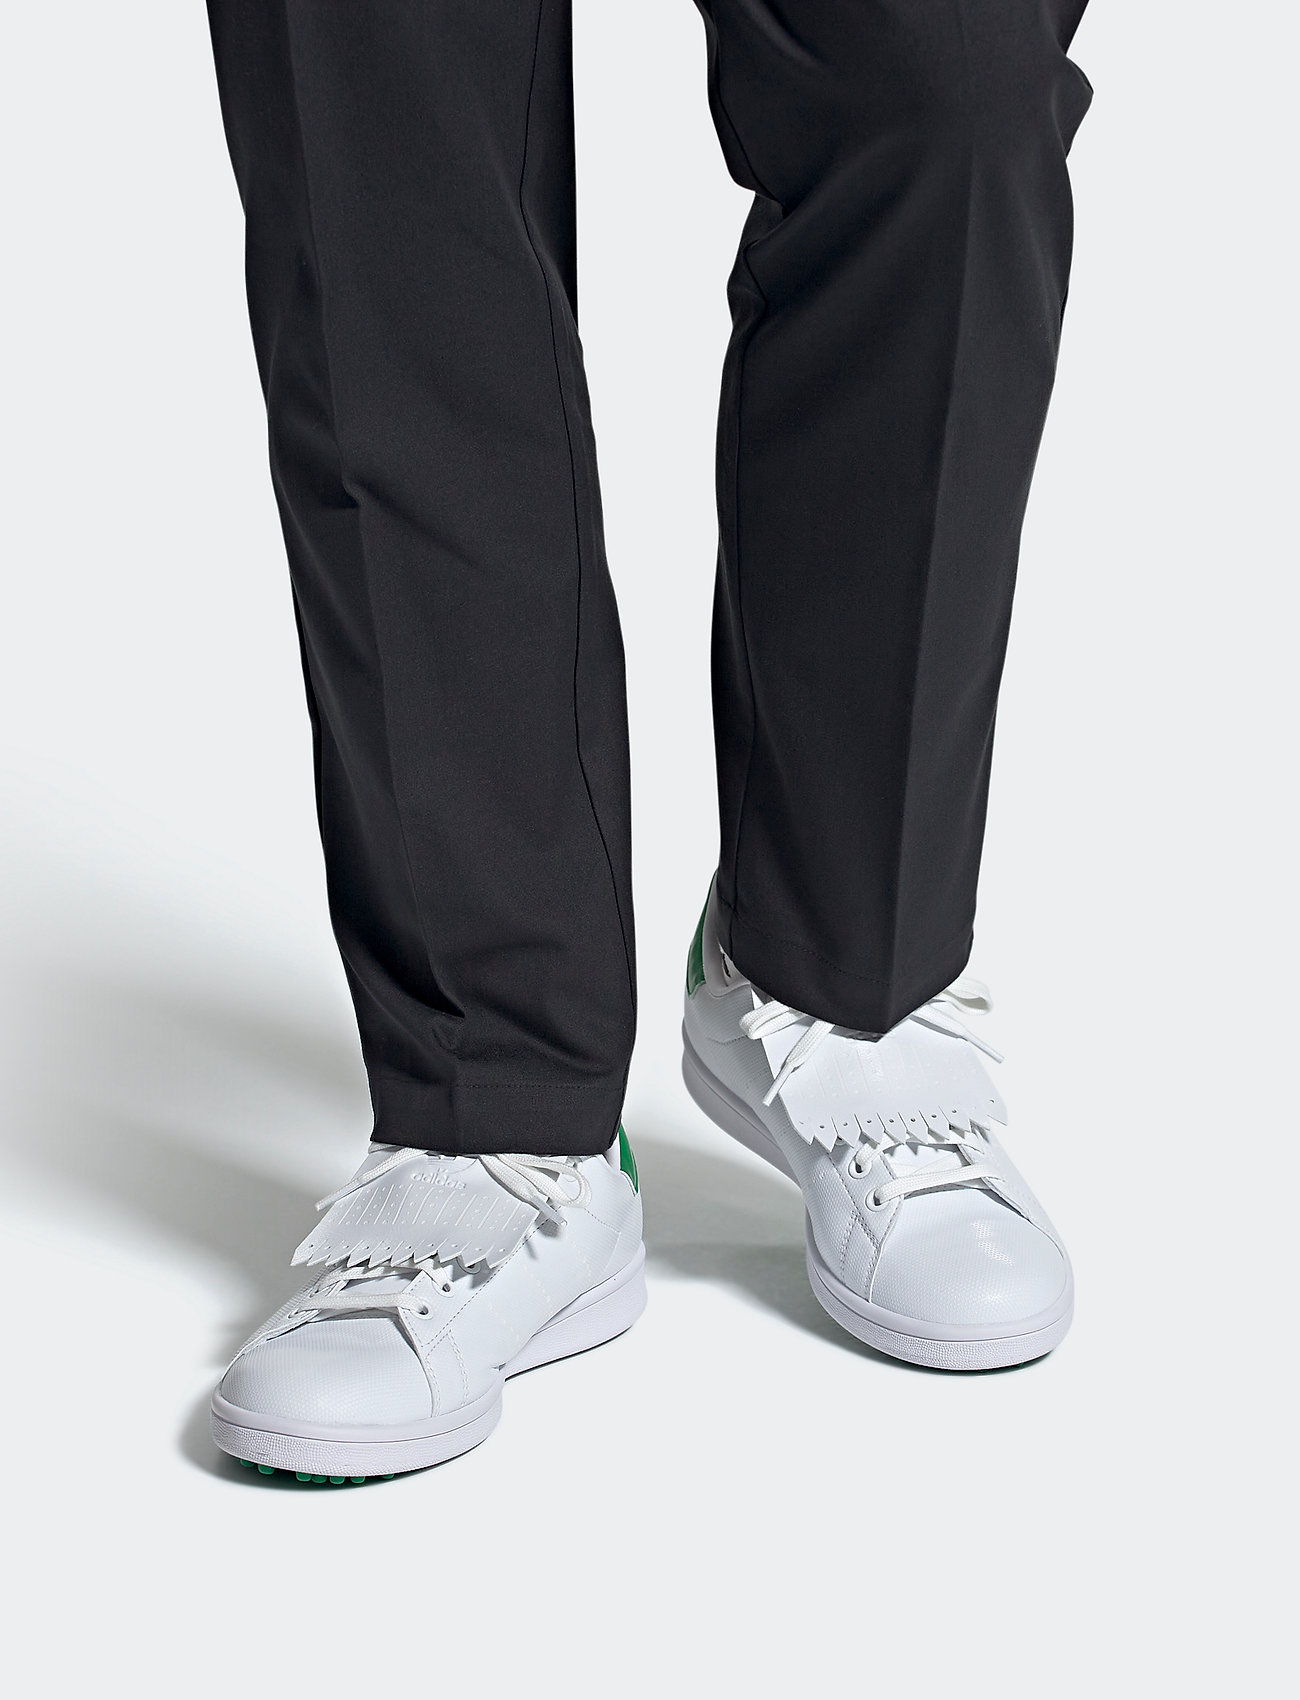 STAN SMITH PRIMEGREEN LIMITED EDITION SPIKELESS GOLF SHOES